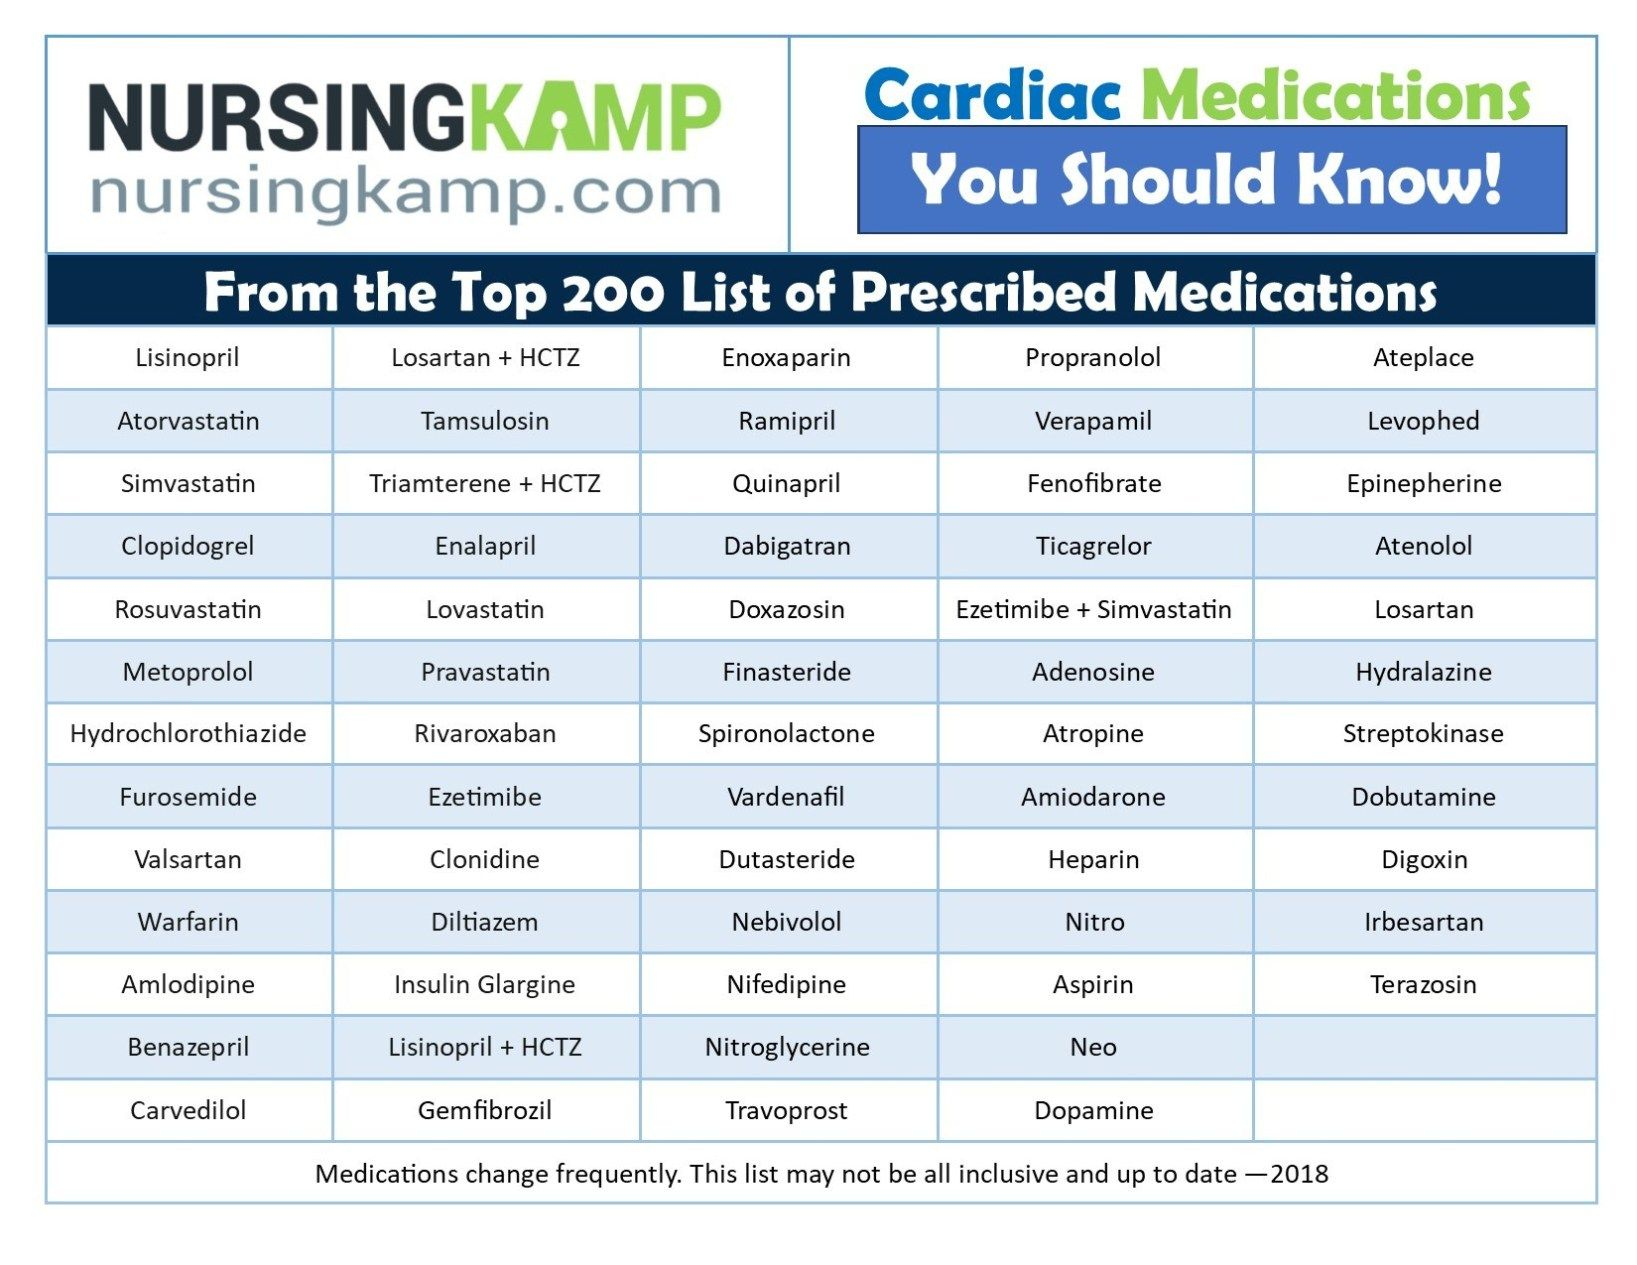 Top Cardiac Cardiac Medications from the Top 200